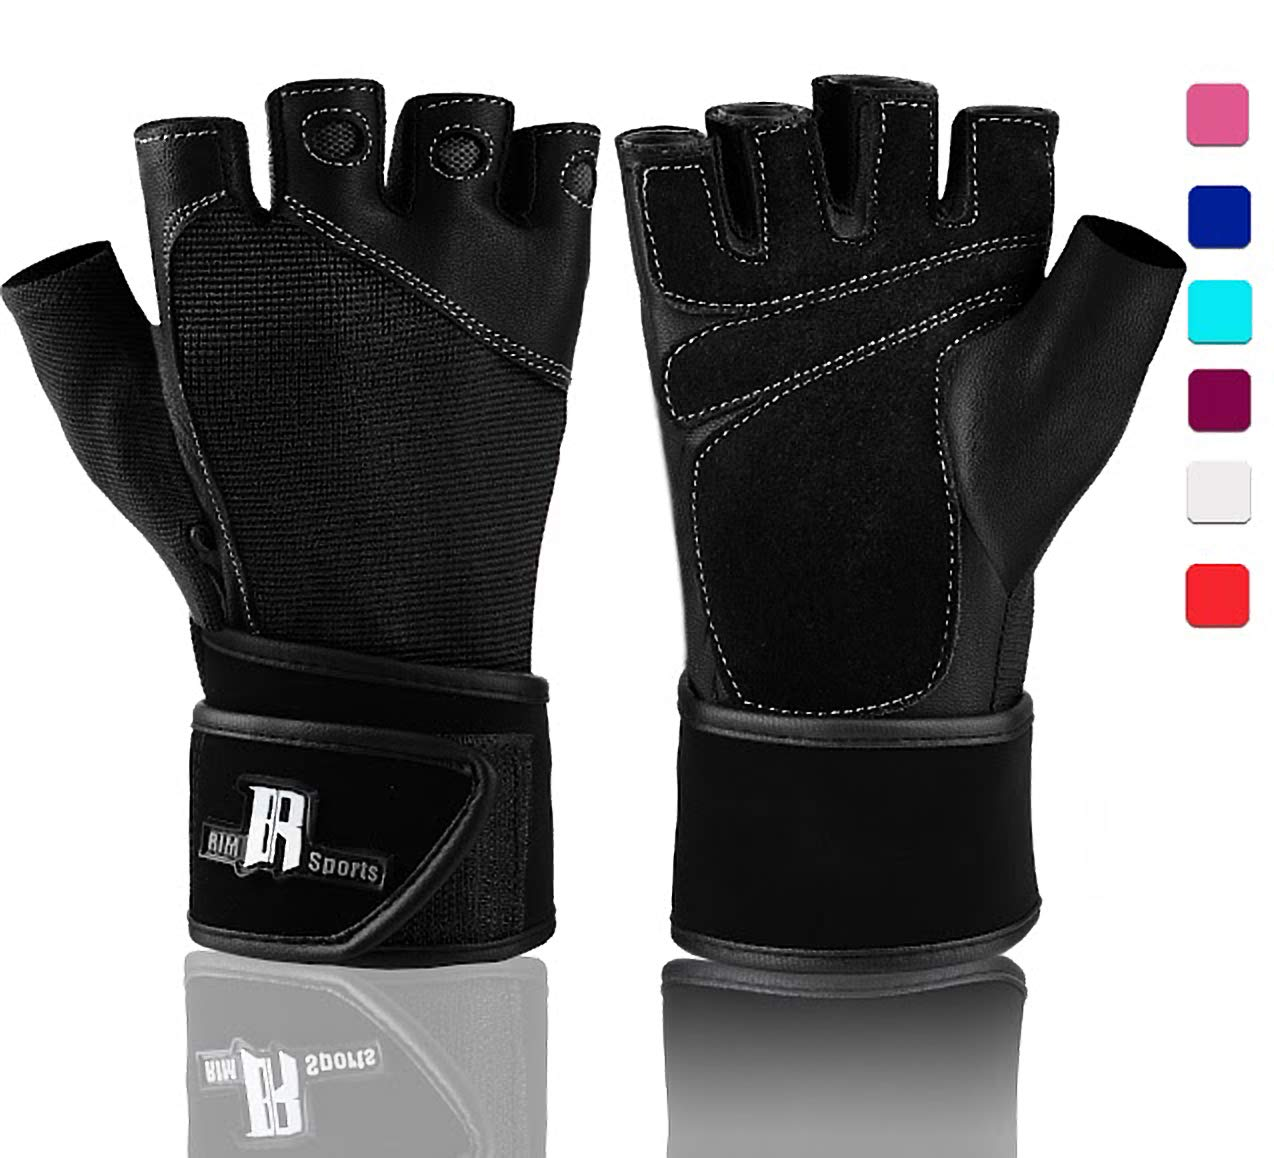 RIMSports Weightlifting Gloves with Wrist Support - Workout Gloves with Wrist Padding for Lifting Weights, Cross Training, Power Lifting, Gym Equipment - Gym Gloves (Black XS)